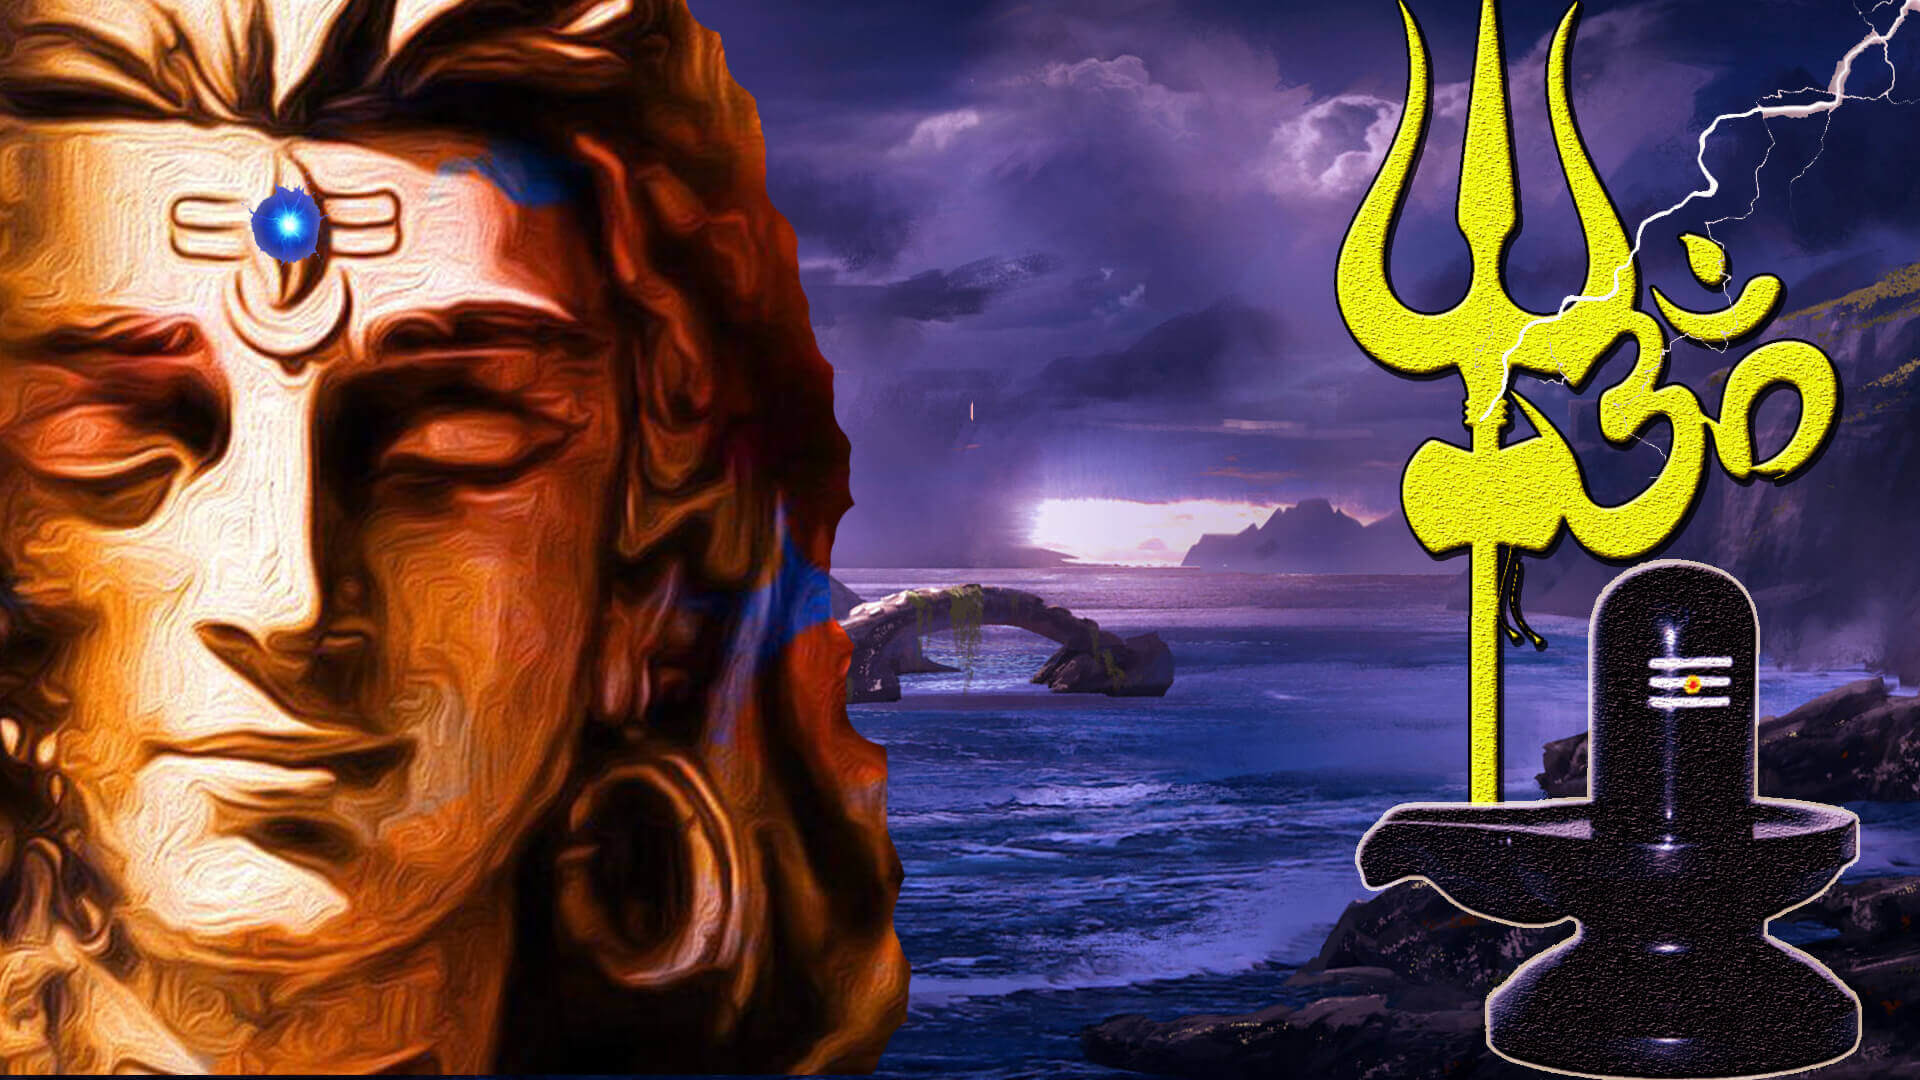 1920x1080 Download lord shiva angry images hd 1080p